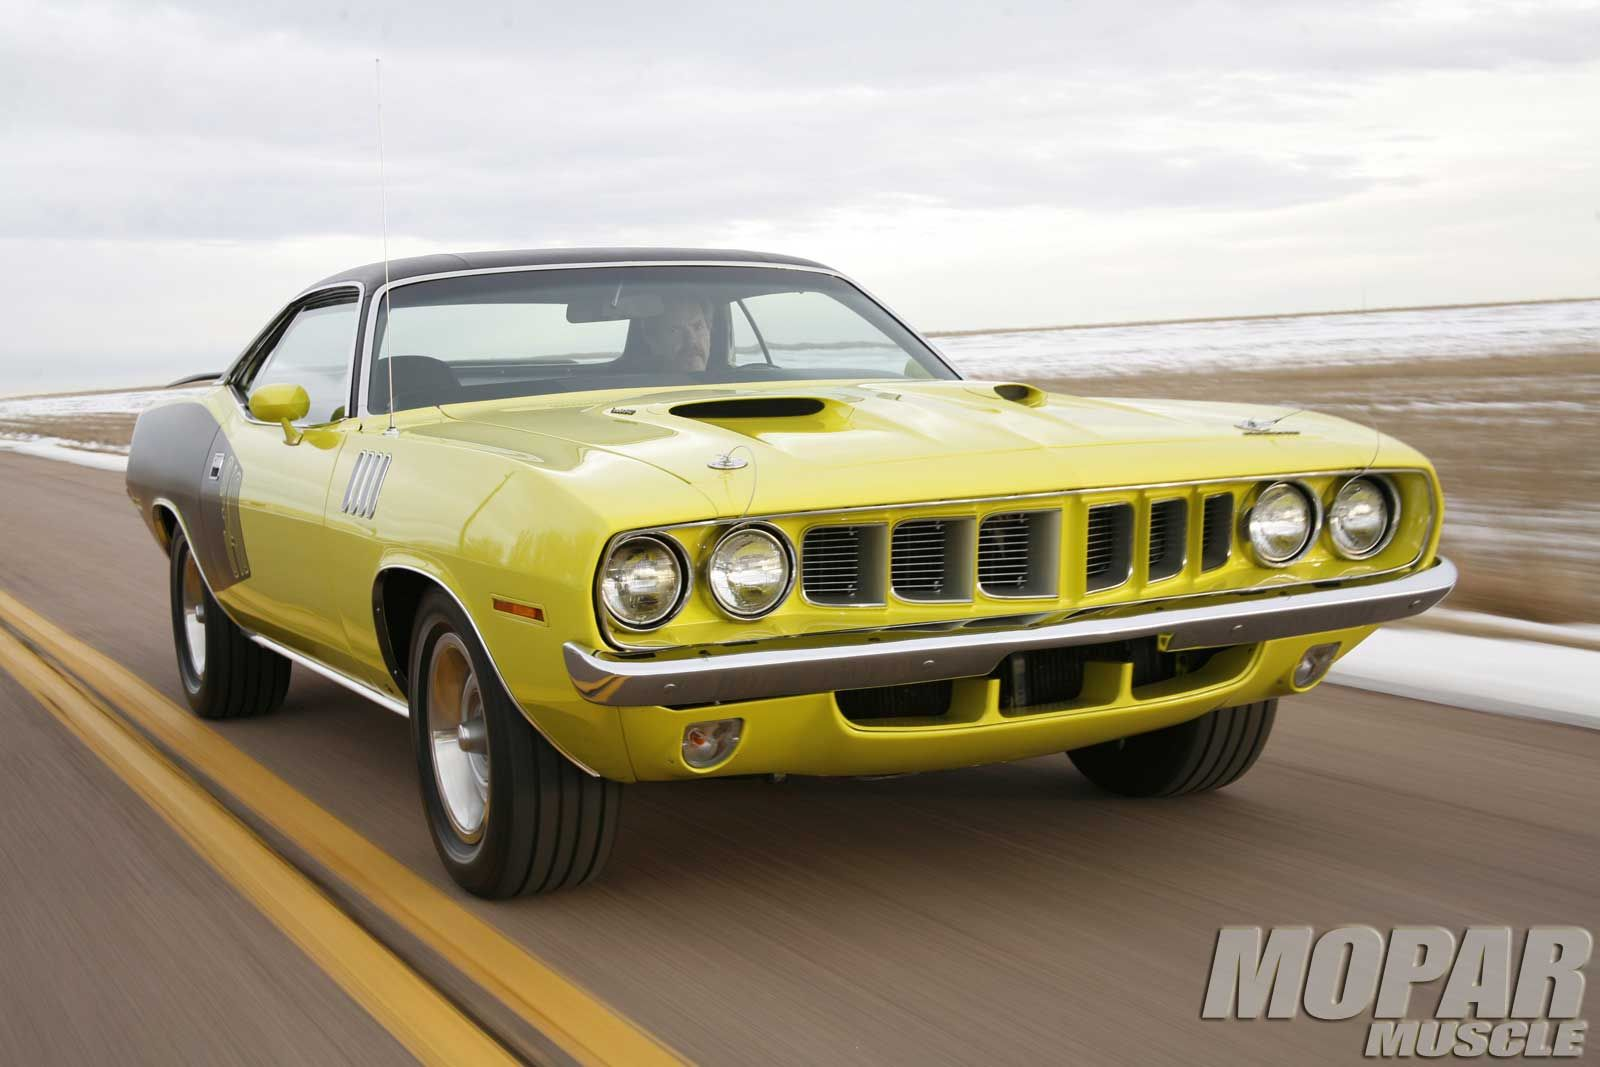 '71 Plymouth Barracuda | Cars, Trucks and Cycles | Pinterest | 1600 x 1067 jpeg 119kB